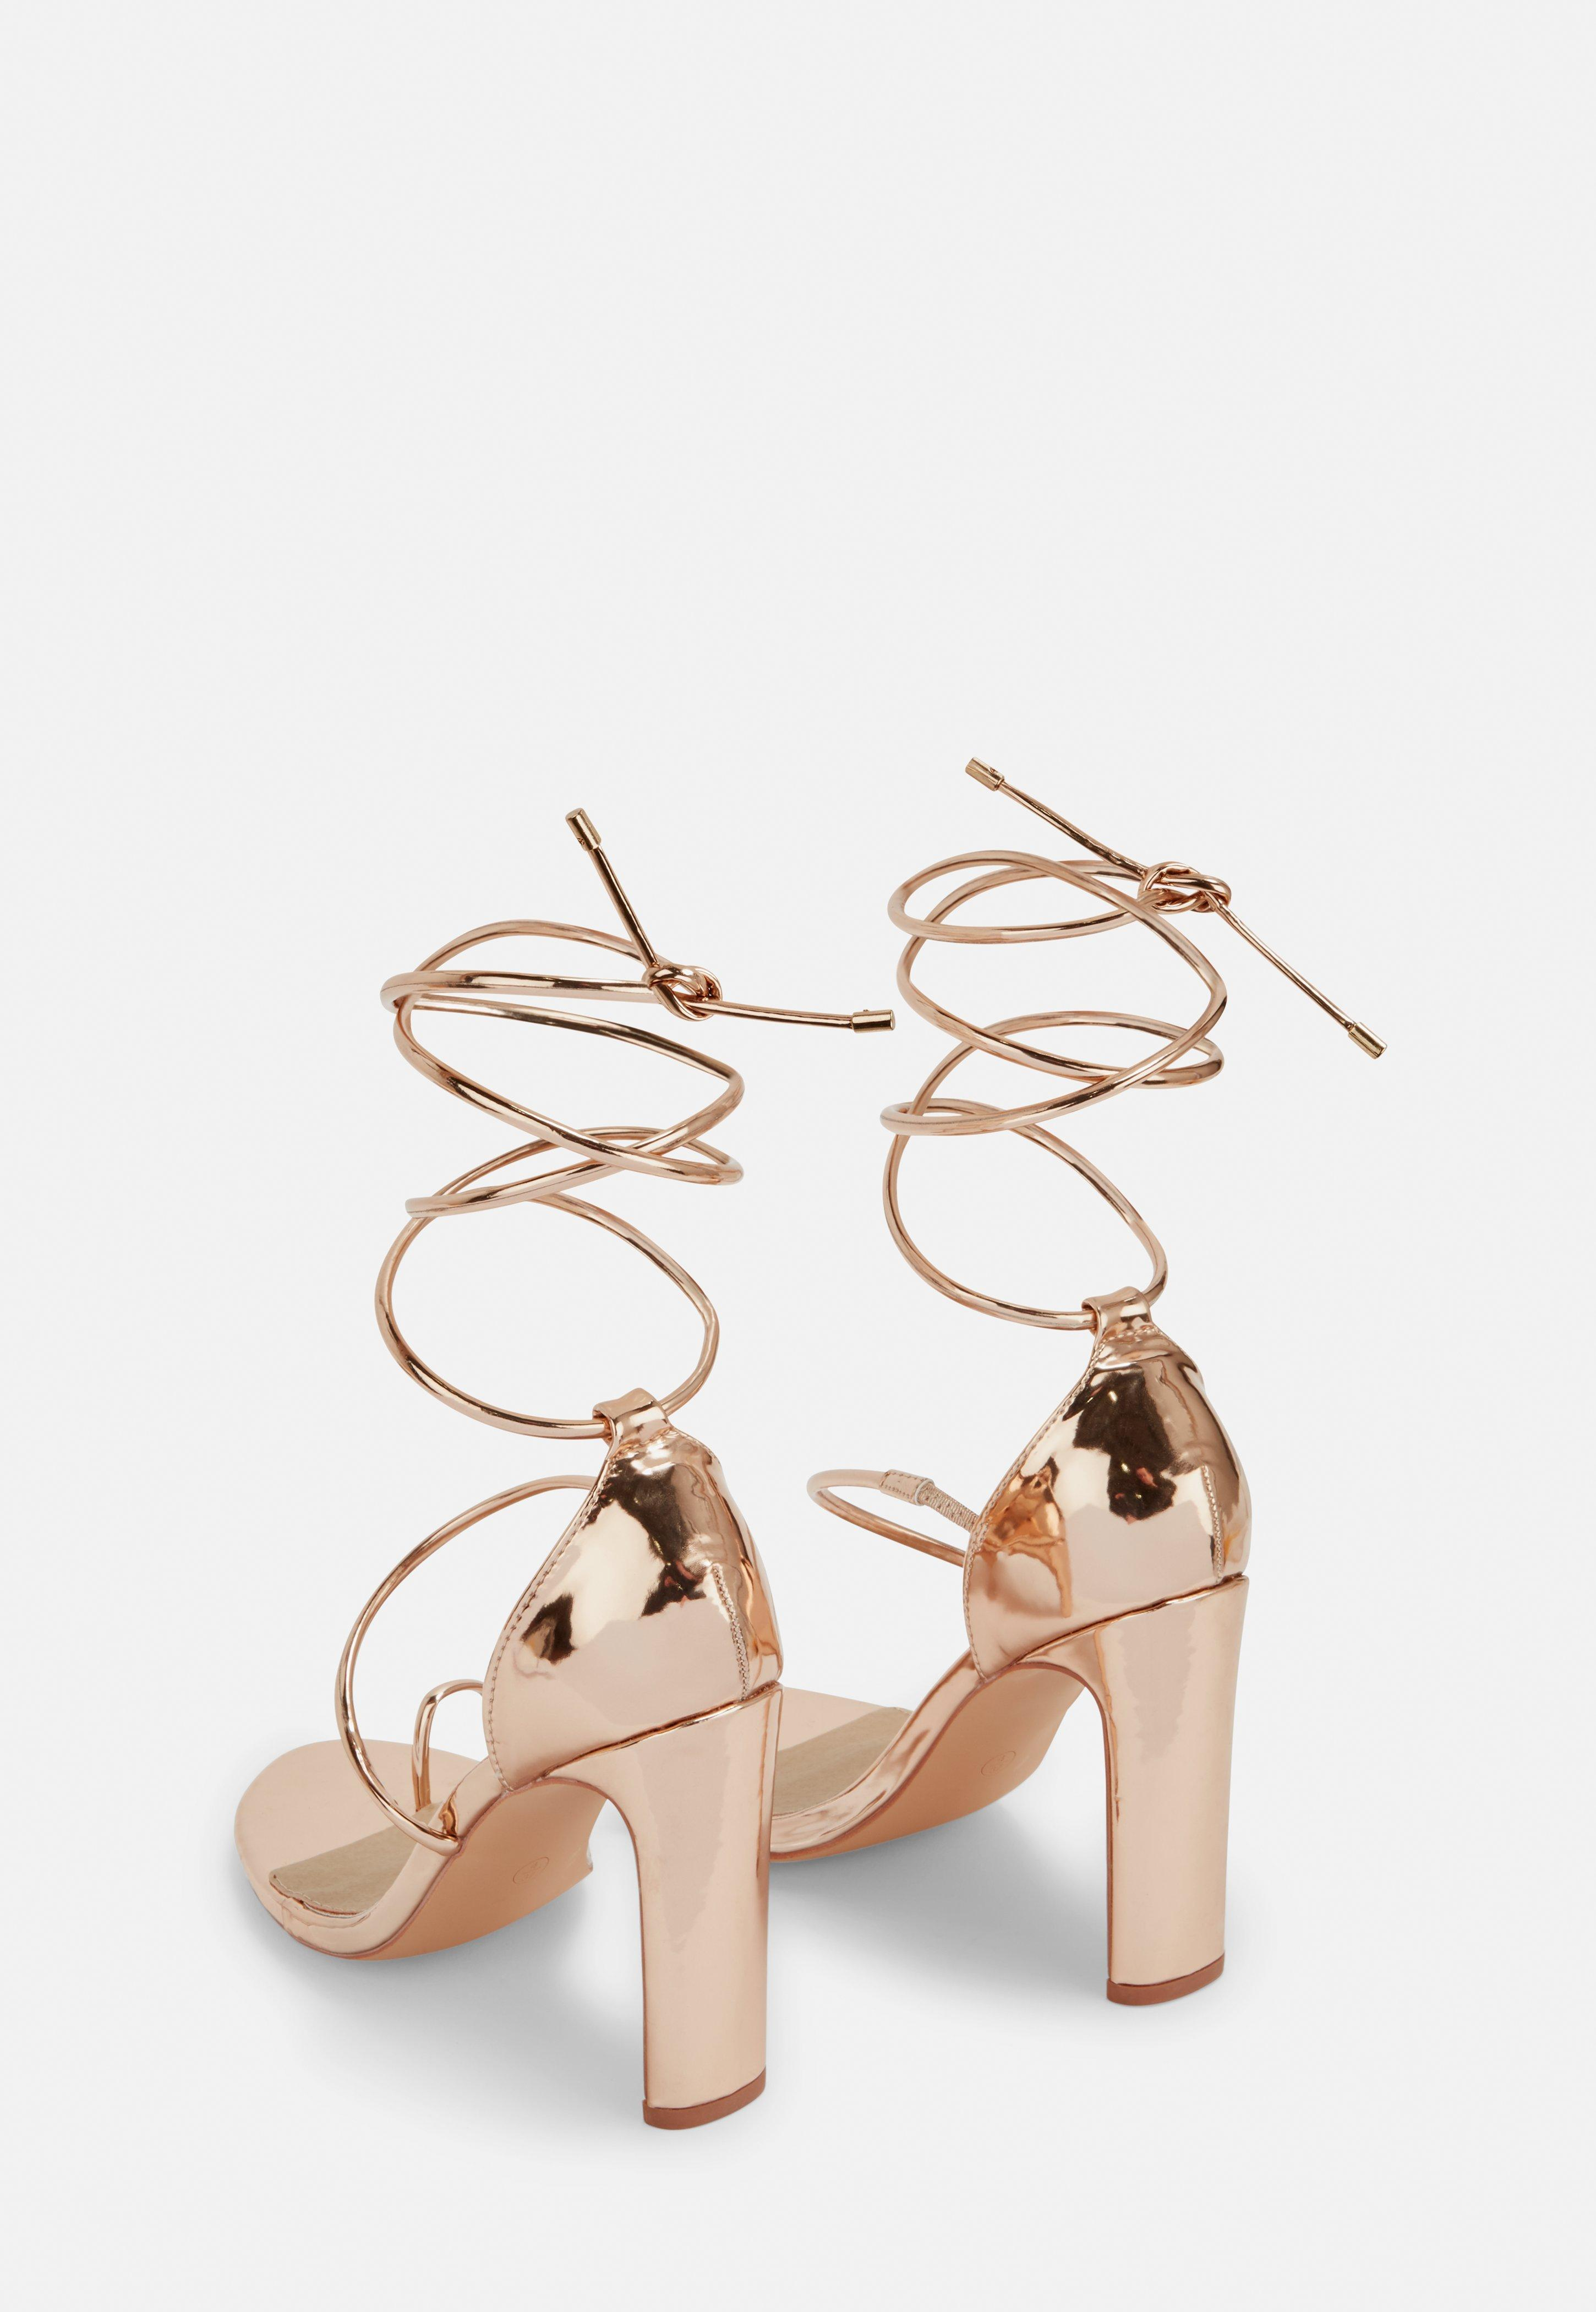 ec53cfa2bc Missguided - Pink Rose Gold Strappy Toe Post Heeled Sandals - Lyst. View  fullscreen